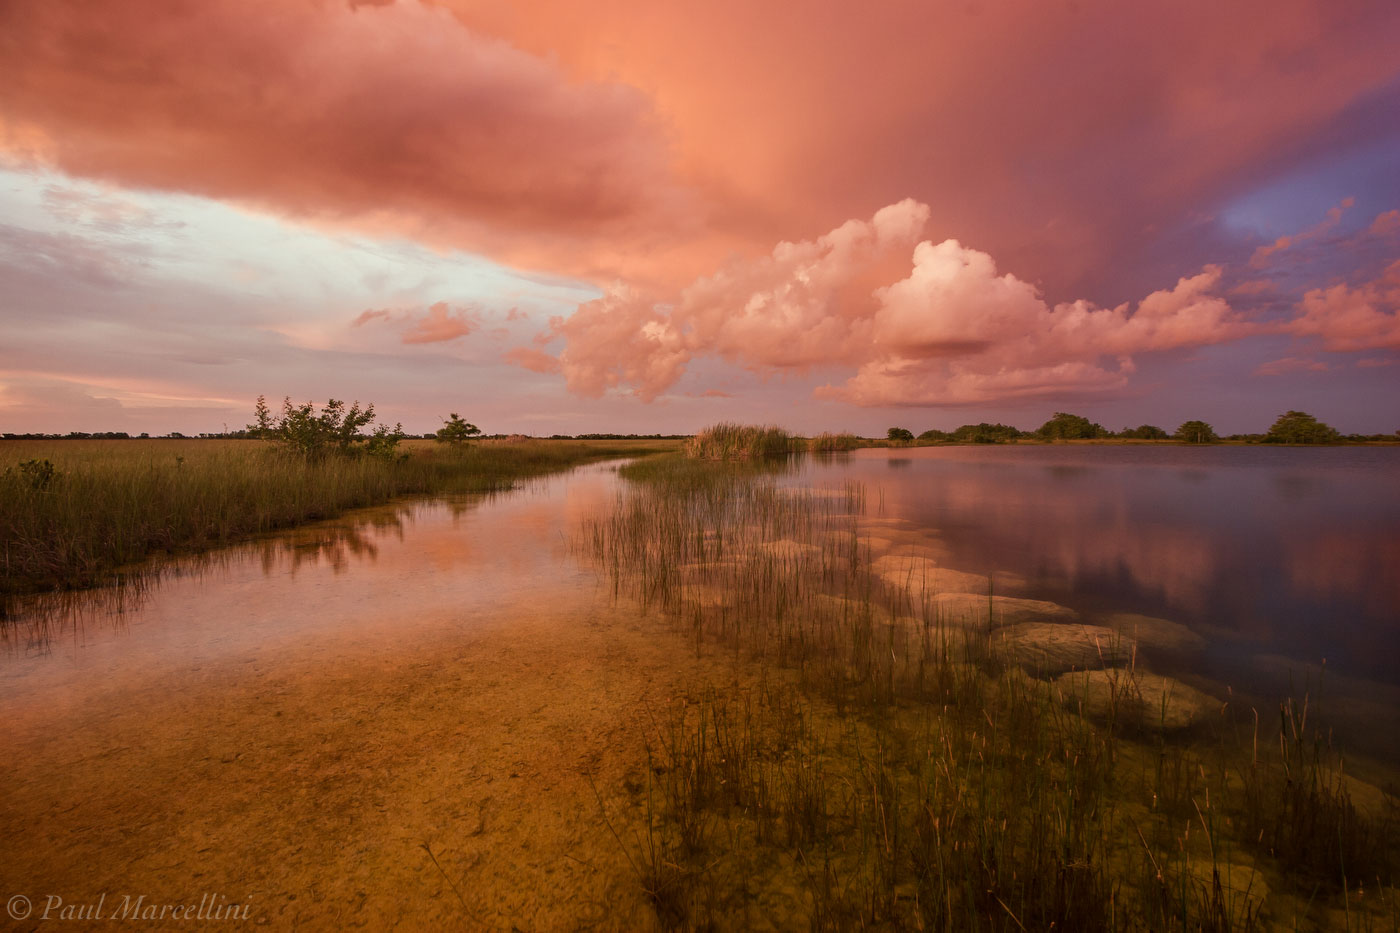 everglades, light, sunset, pond, Florida, nature, photography, florida national parks, photo